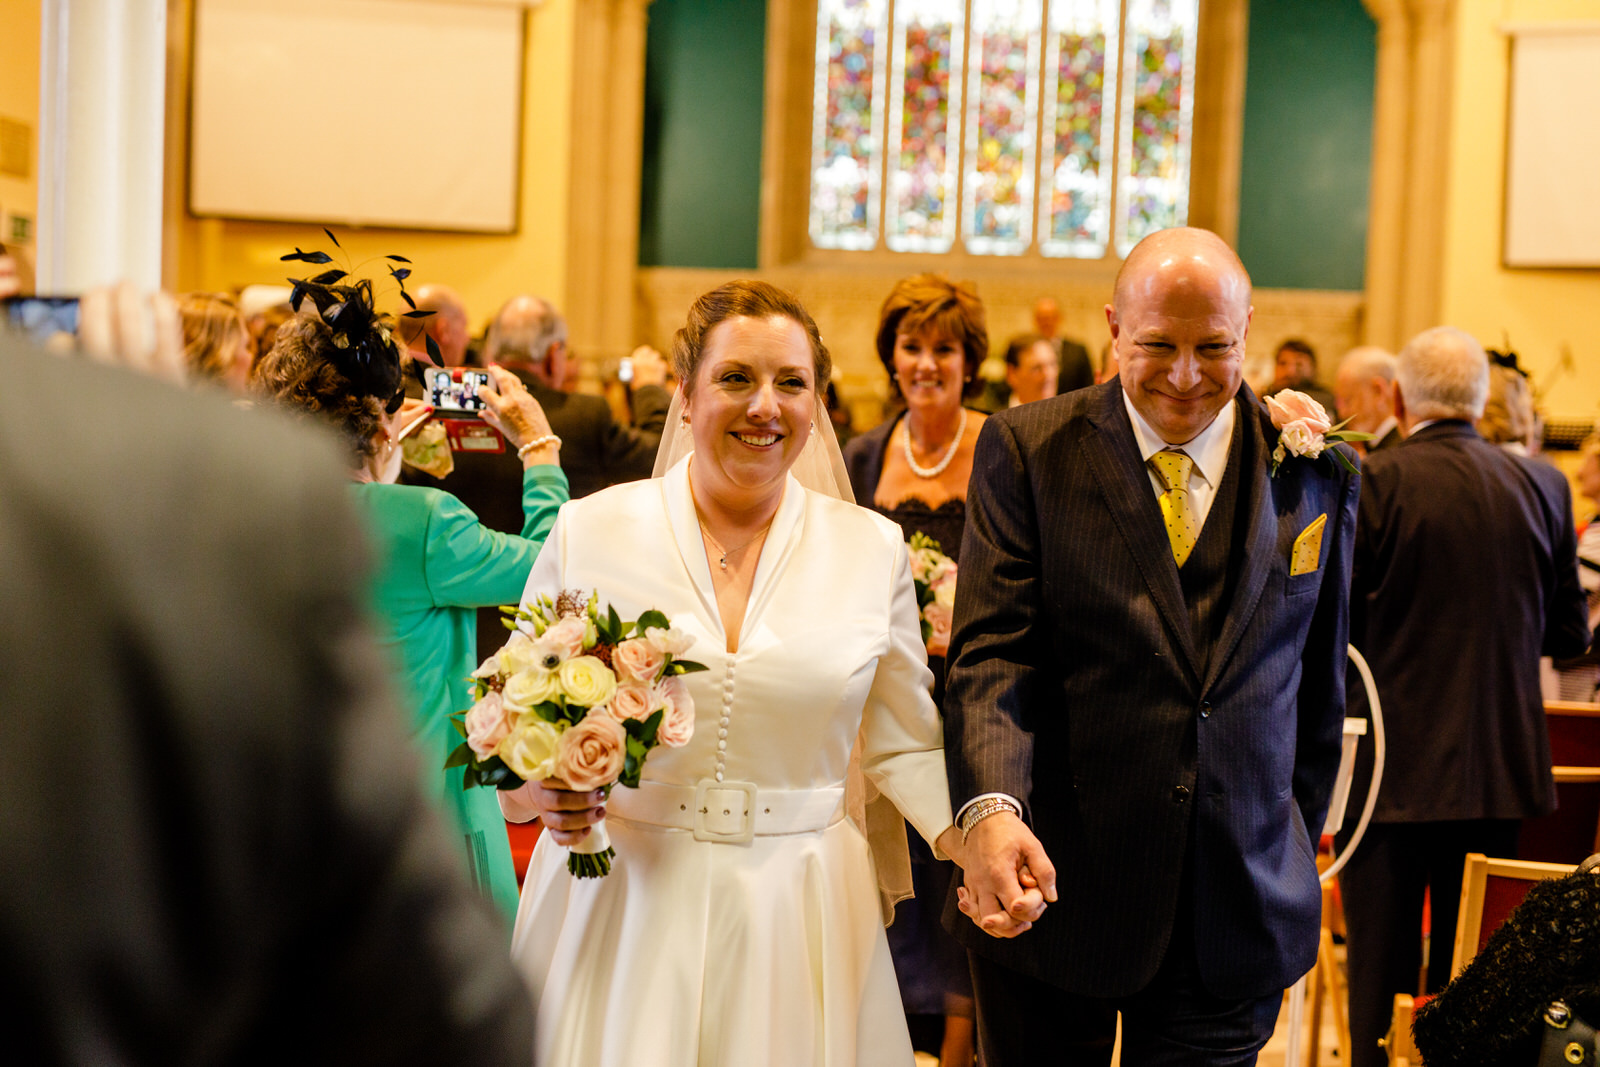 Roger-kenny-wedding-photographer-wicklow-glenview_046.jpg